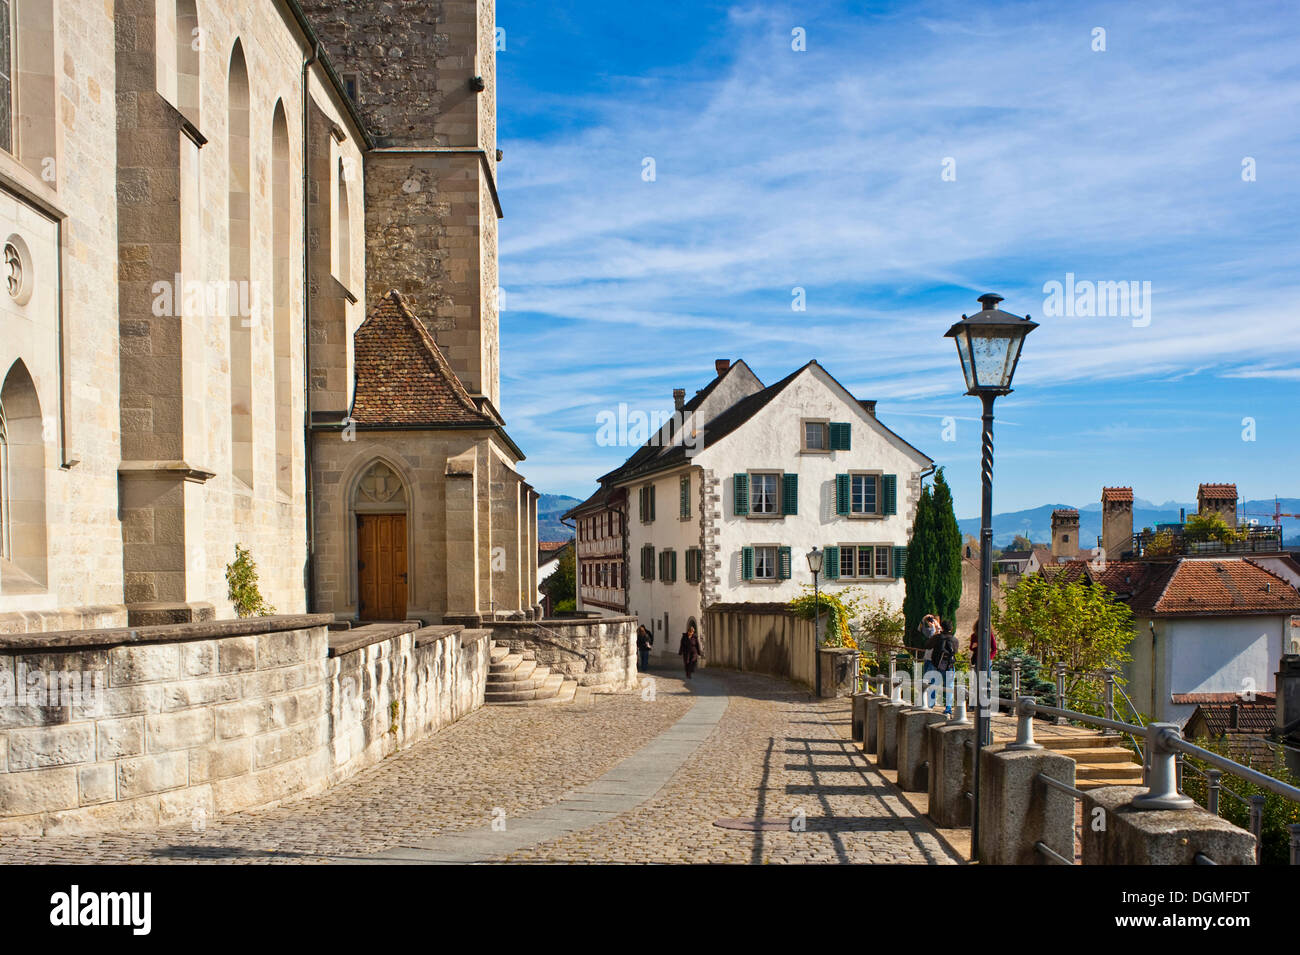 Stadtpfarrkirche parish church, Rapperswil, Sankt Gallen, Switzerland, Europe - Stock Image